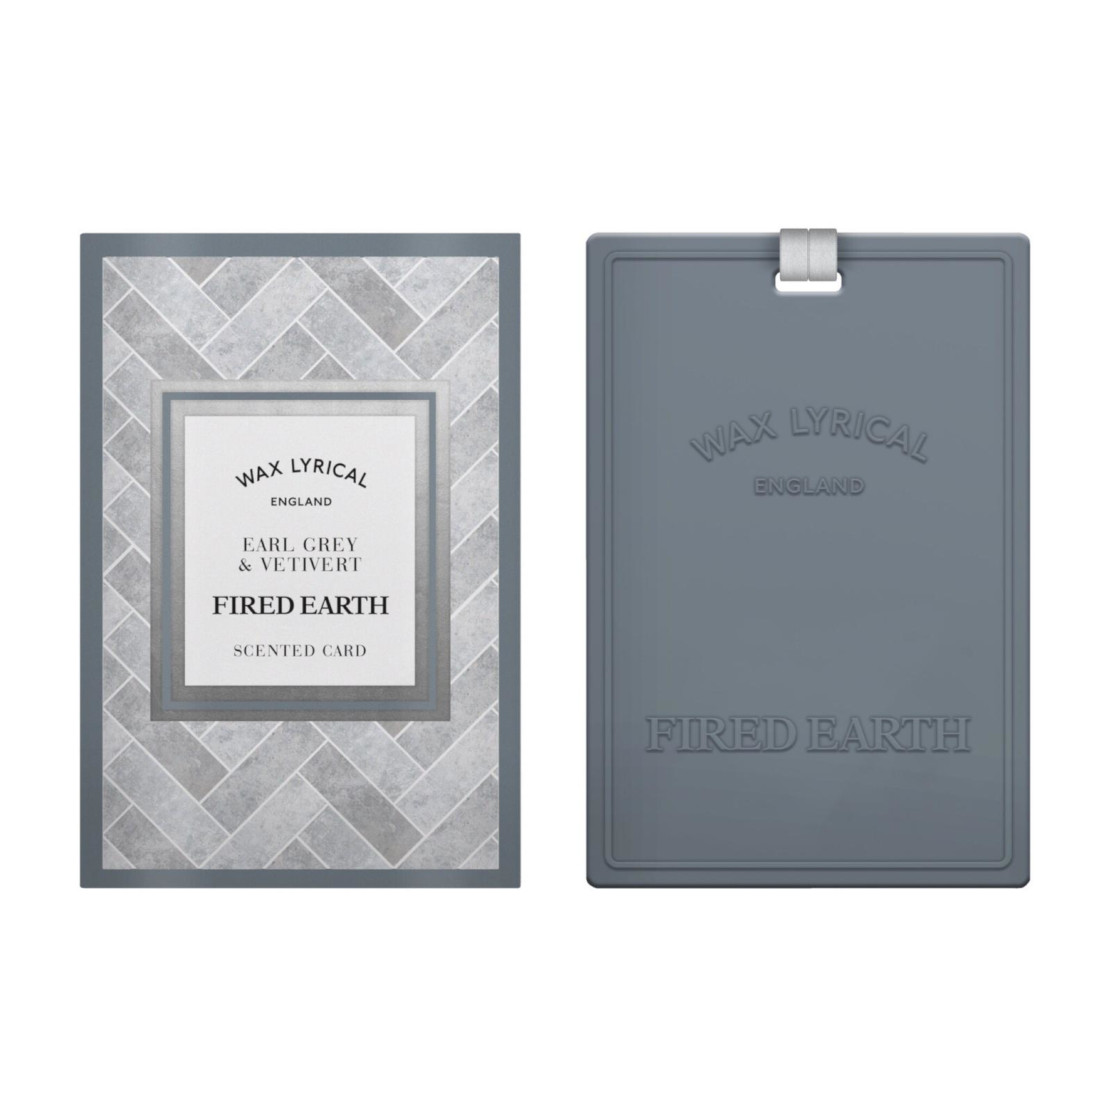 Wax Lyrical Fired Earth Speciality Earl Grey & Vetivert Scented Card